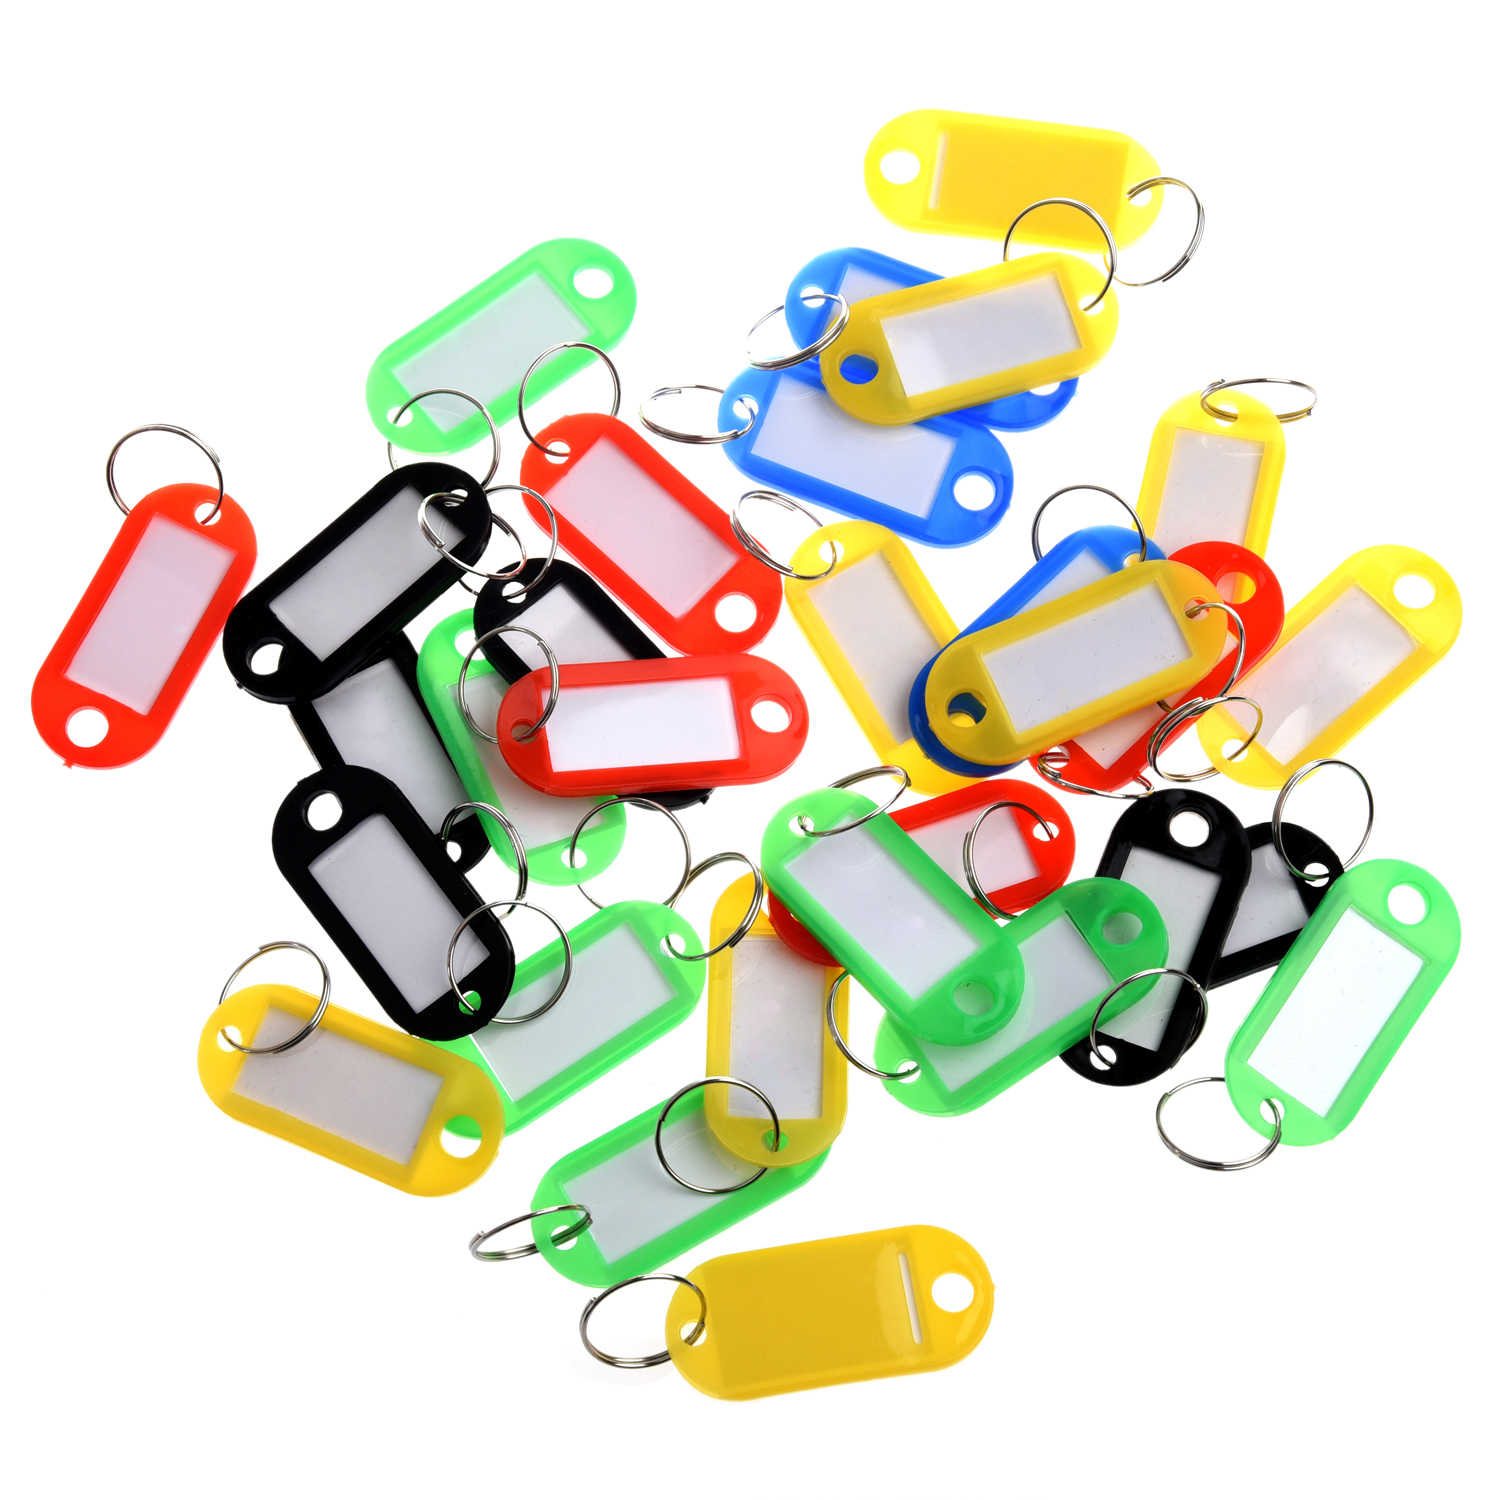 30 Pcs Colorful Plastic Key Fobs Language ID Tags Labels Key Rings Name Tags With Split Ring For Baggage Key Chains Key Rings